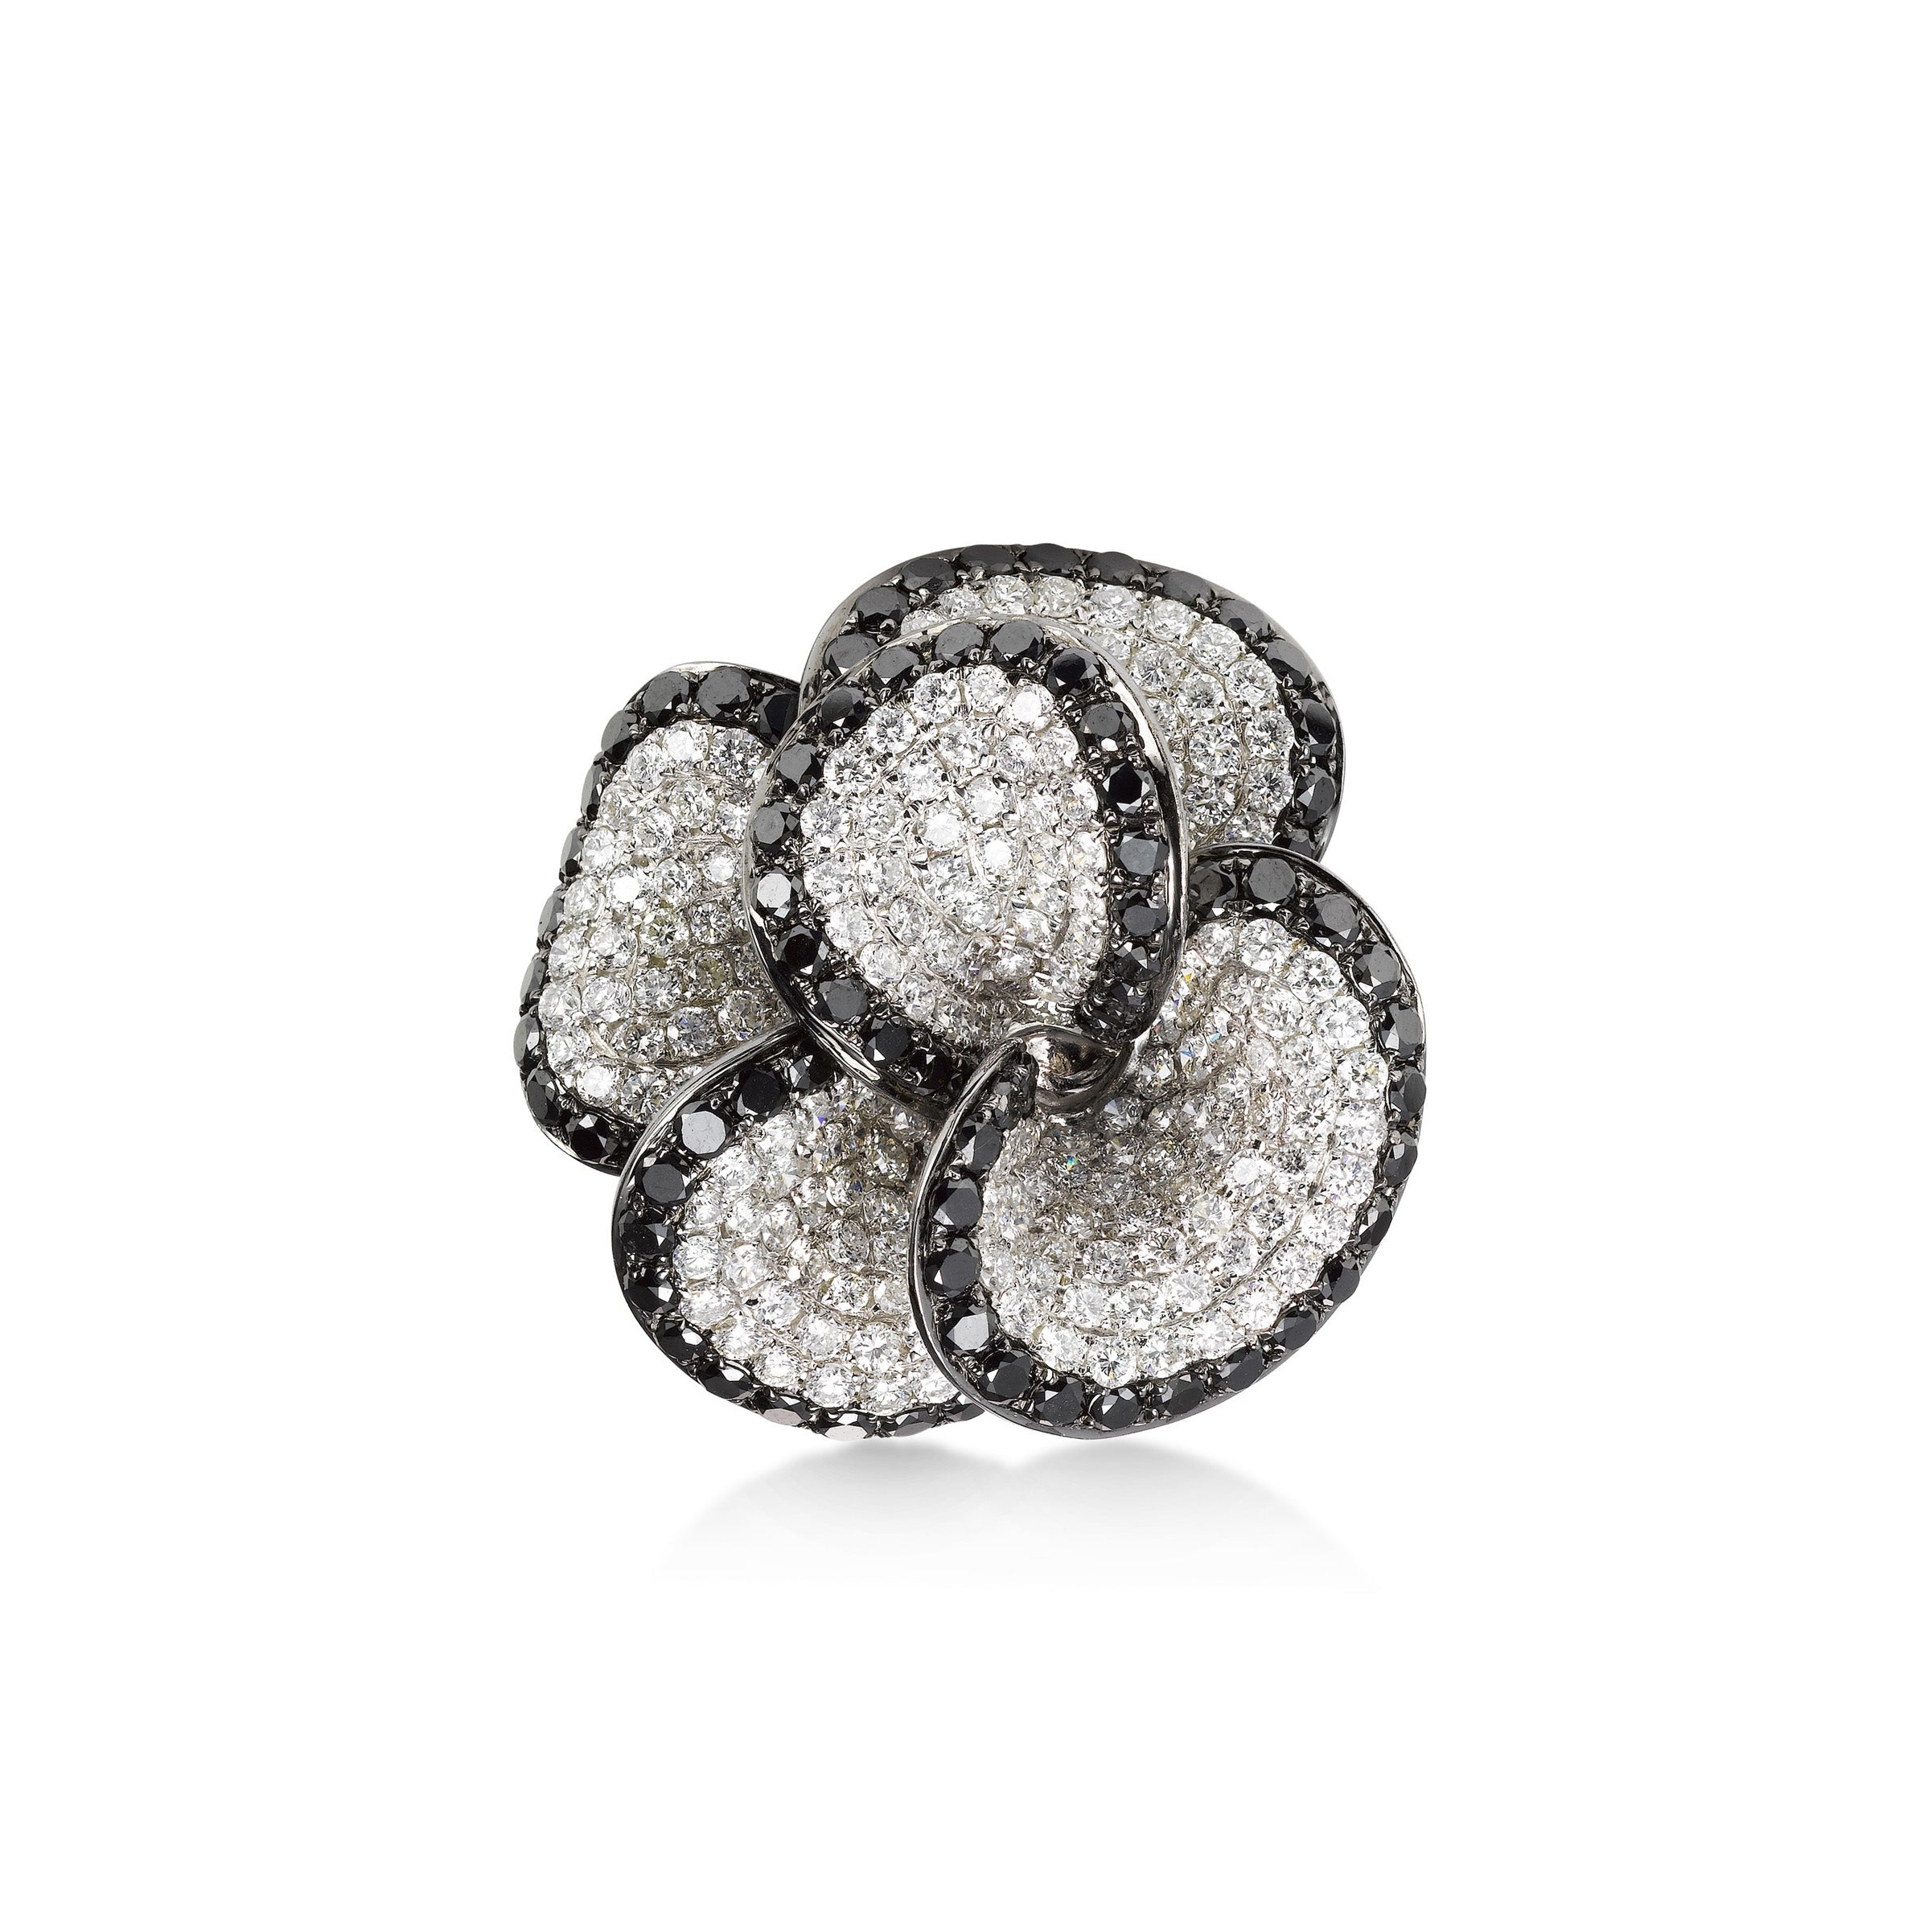 White and Black Diamond Flower Ring, 18K White Gold